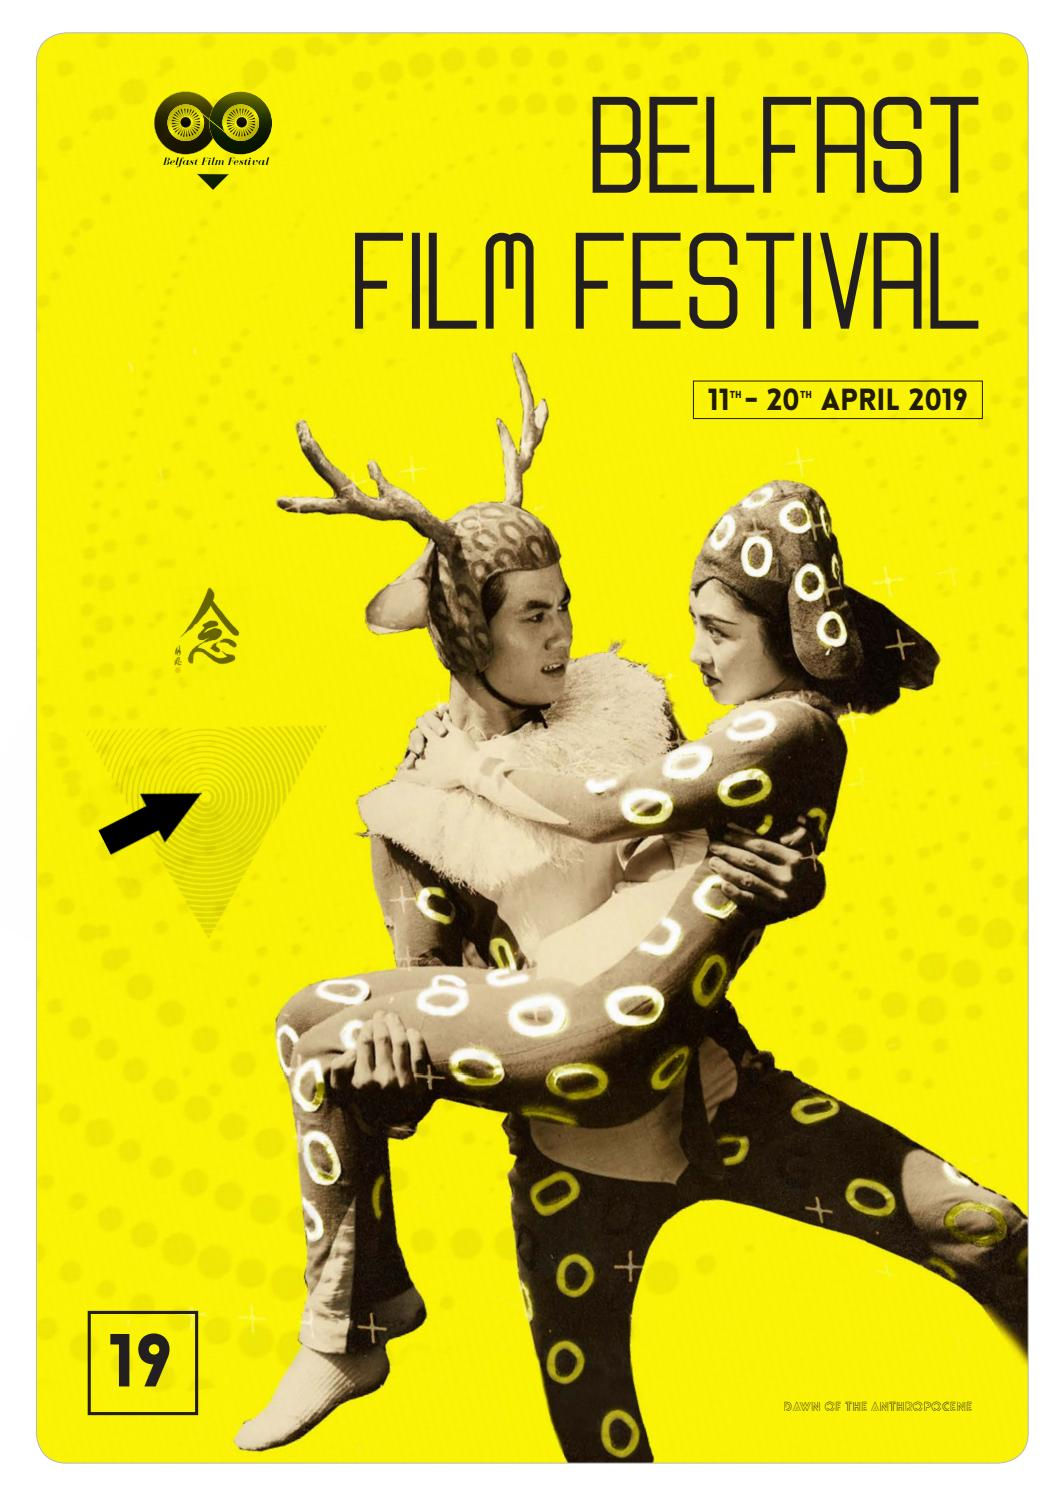 The 19th Belfast Film Festival By Belfastfilmfestival2 Issuu